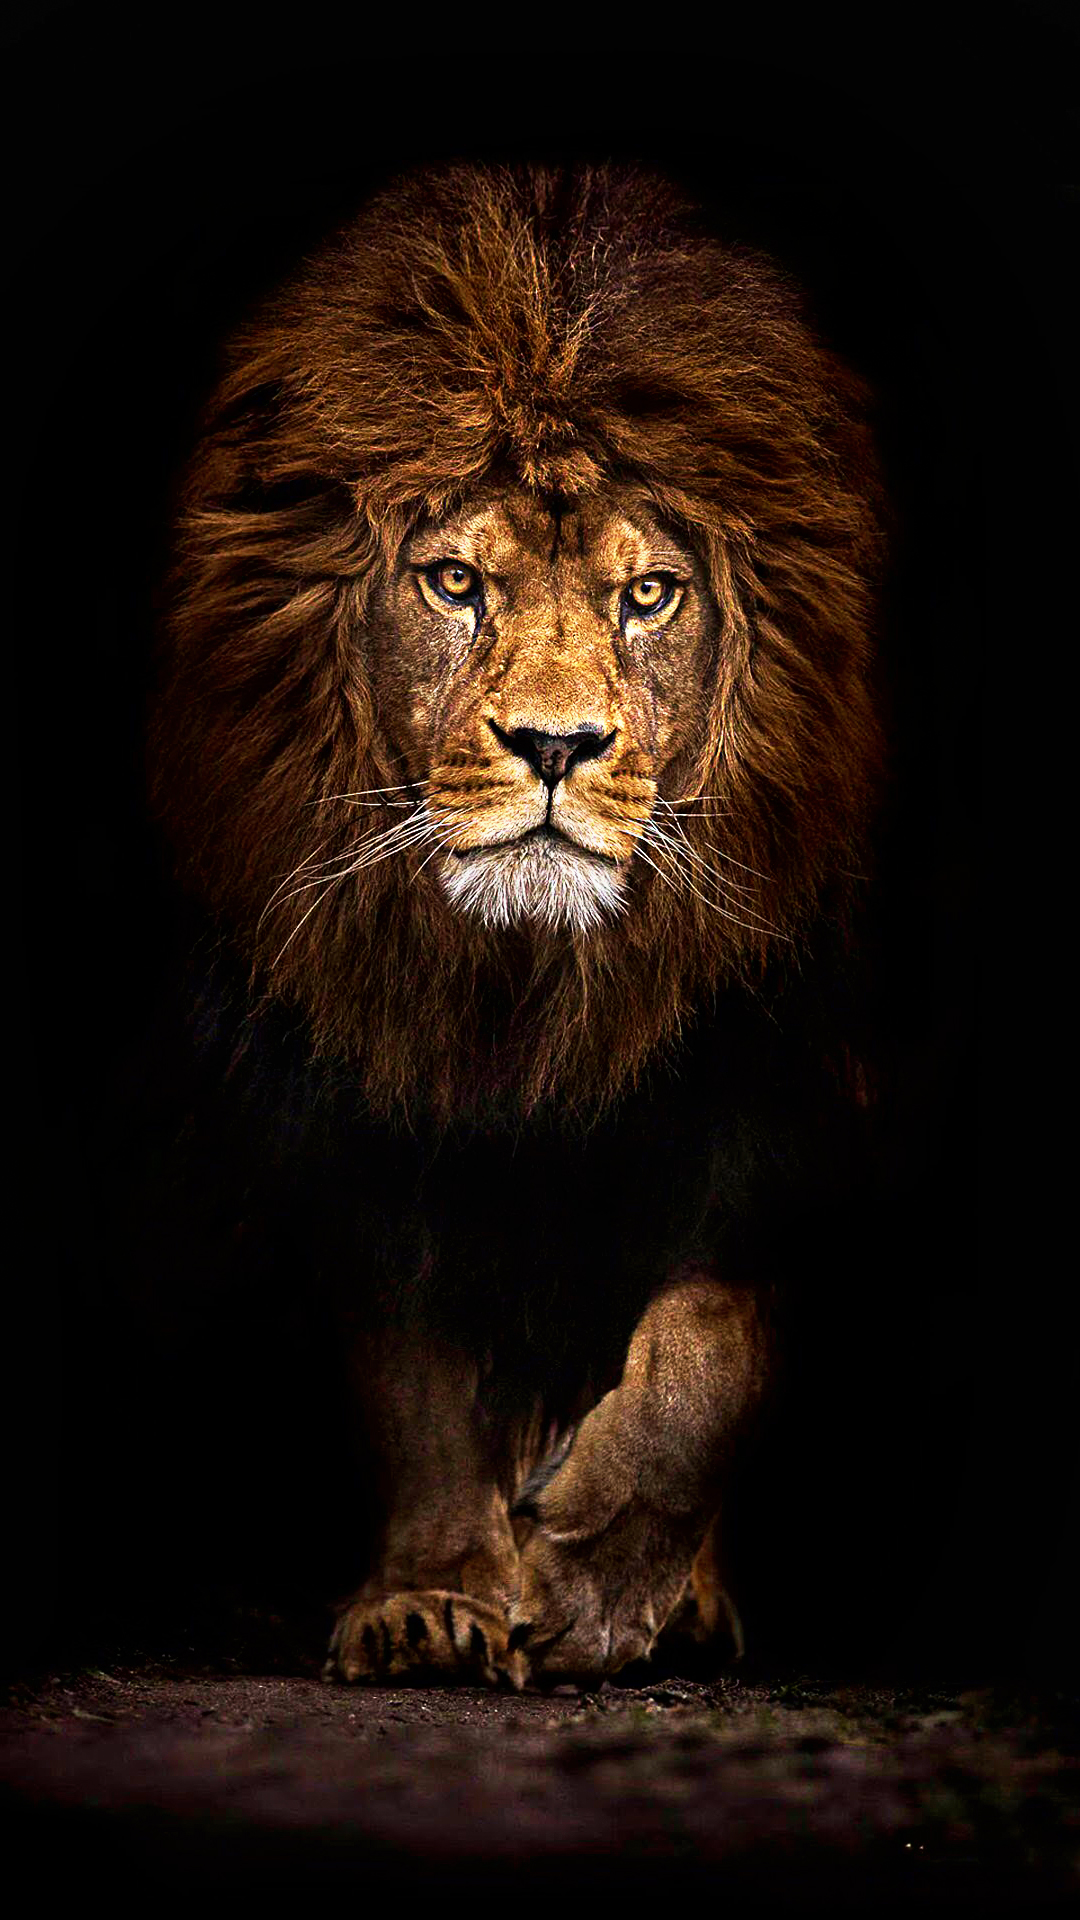 mufasa lion 1080 x 1920 hd wallpaper